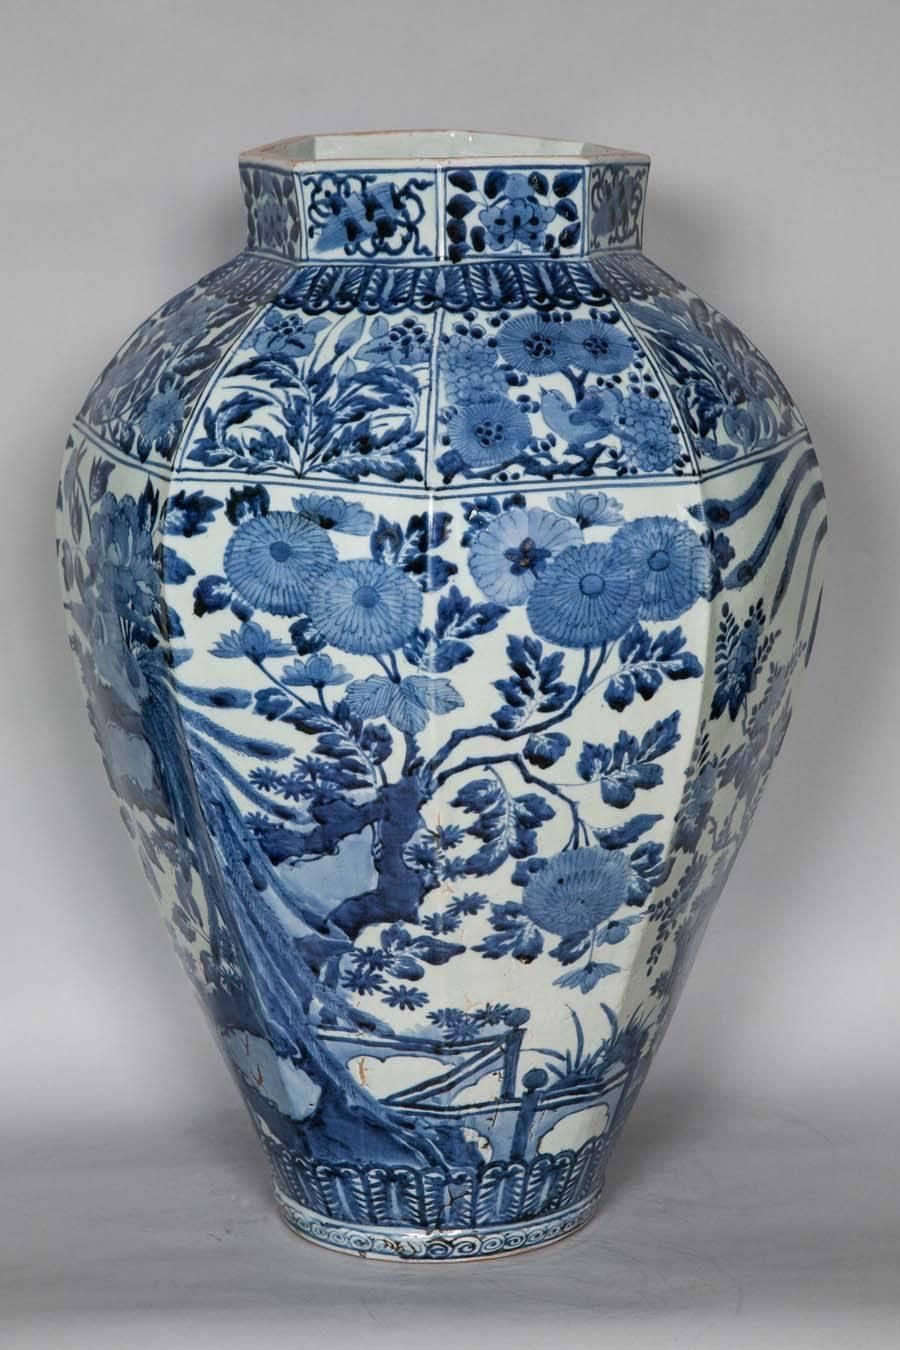 ralph lauren blue and white vase of tall japanese arita blue and white vase circa 1700 raymond inside tall japanese arita blue and white vase circa 1700 raymond horneman